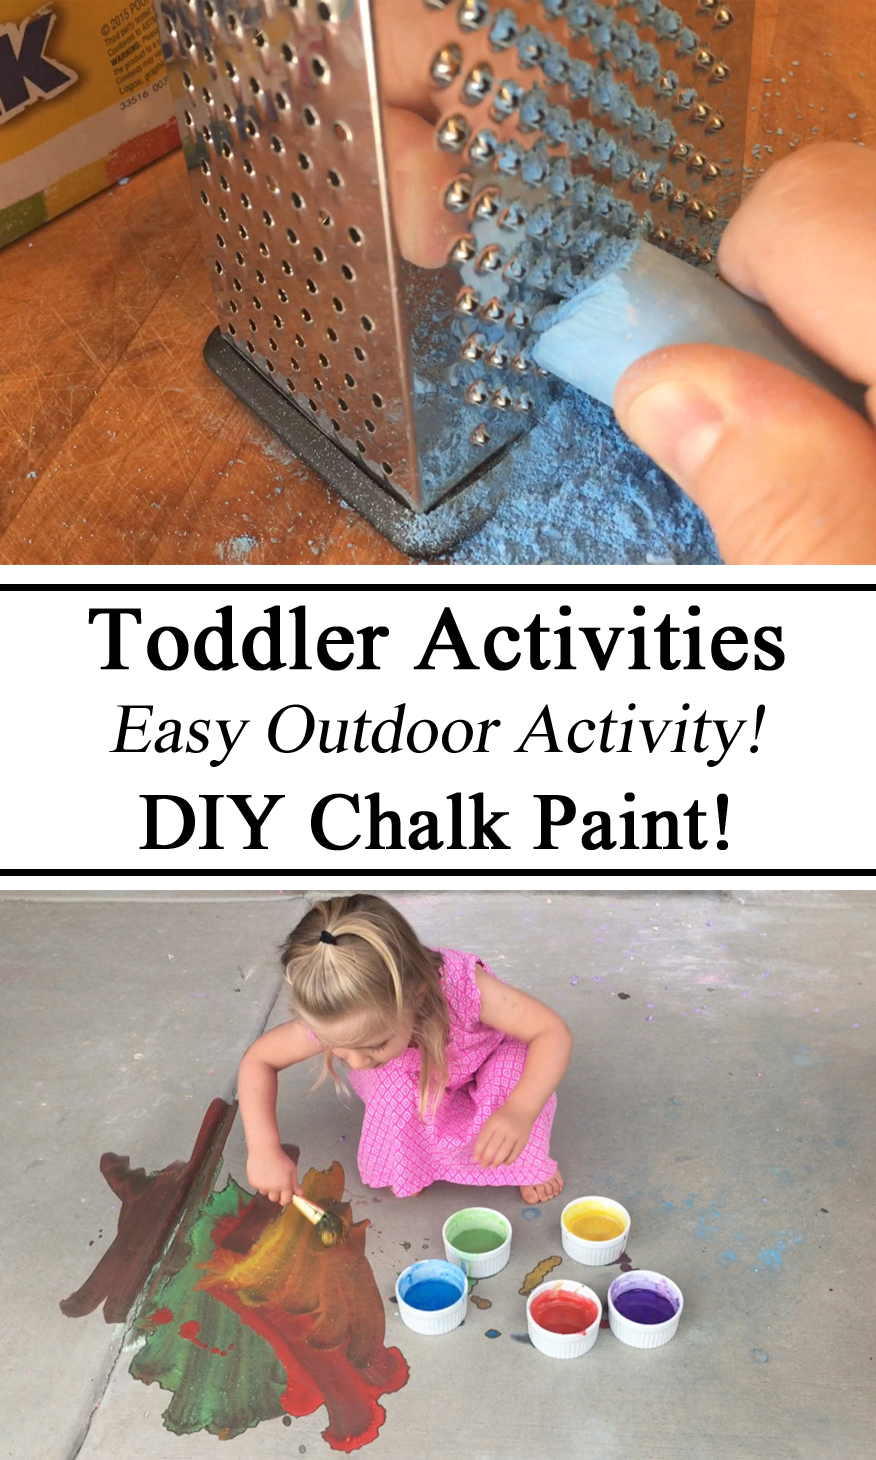 Make your own Chalk Paint, Upcycle Chalk Sticks, Outdoor Activity, Messy Play, Art for Kids, Summer Activity, Painting, Arts & Crafts, Toddler, Preschool, Kindergarten, Ideas, Recipe, How to, DIY, Homeschool, Homeschooling, Montessori